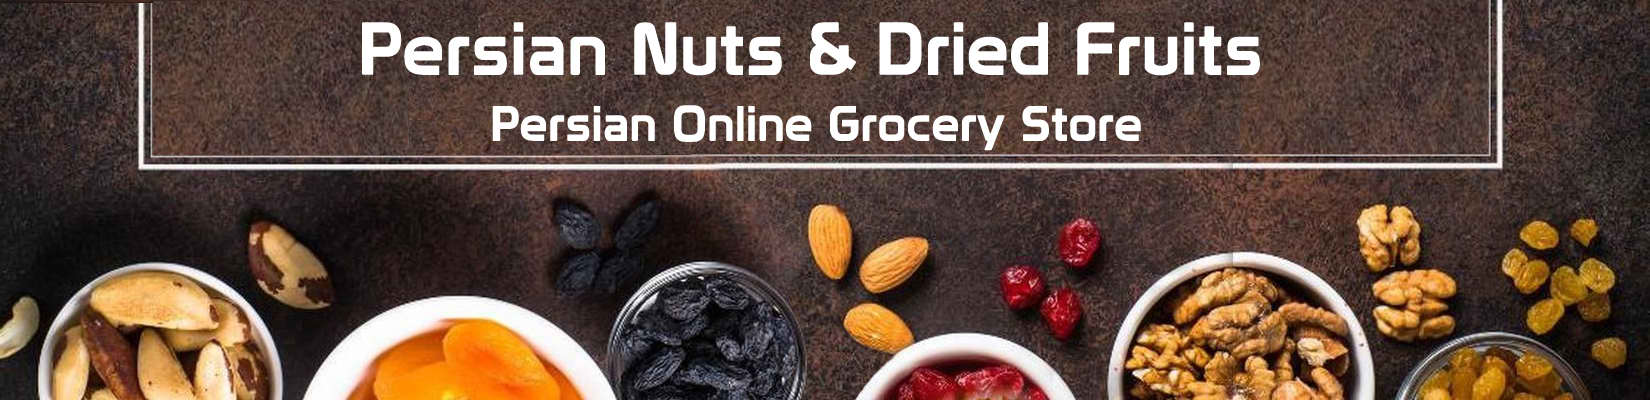 Persian Online Grocery Store | Persian Nuts & Dried Fruits